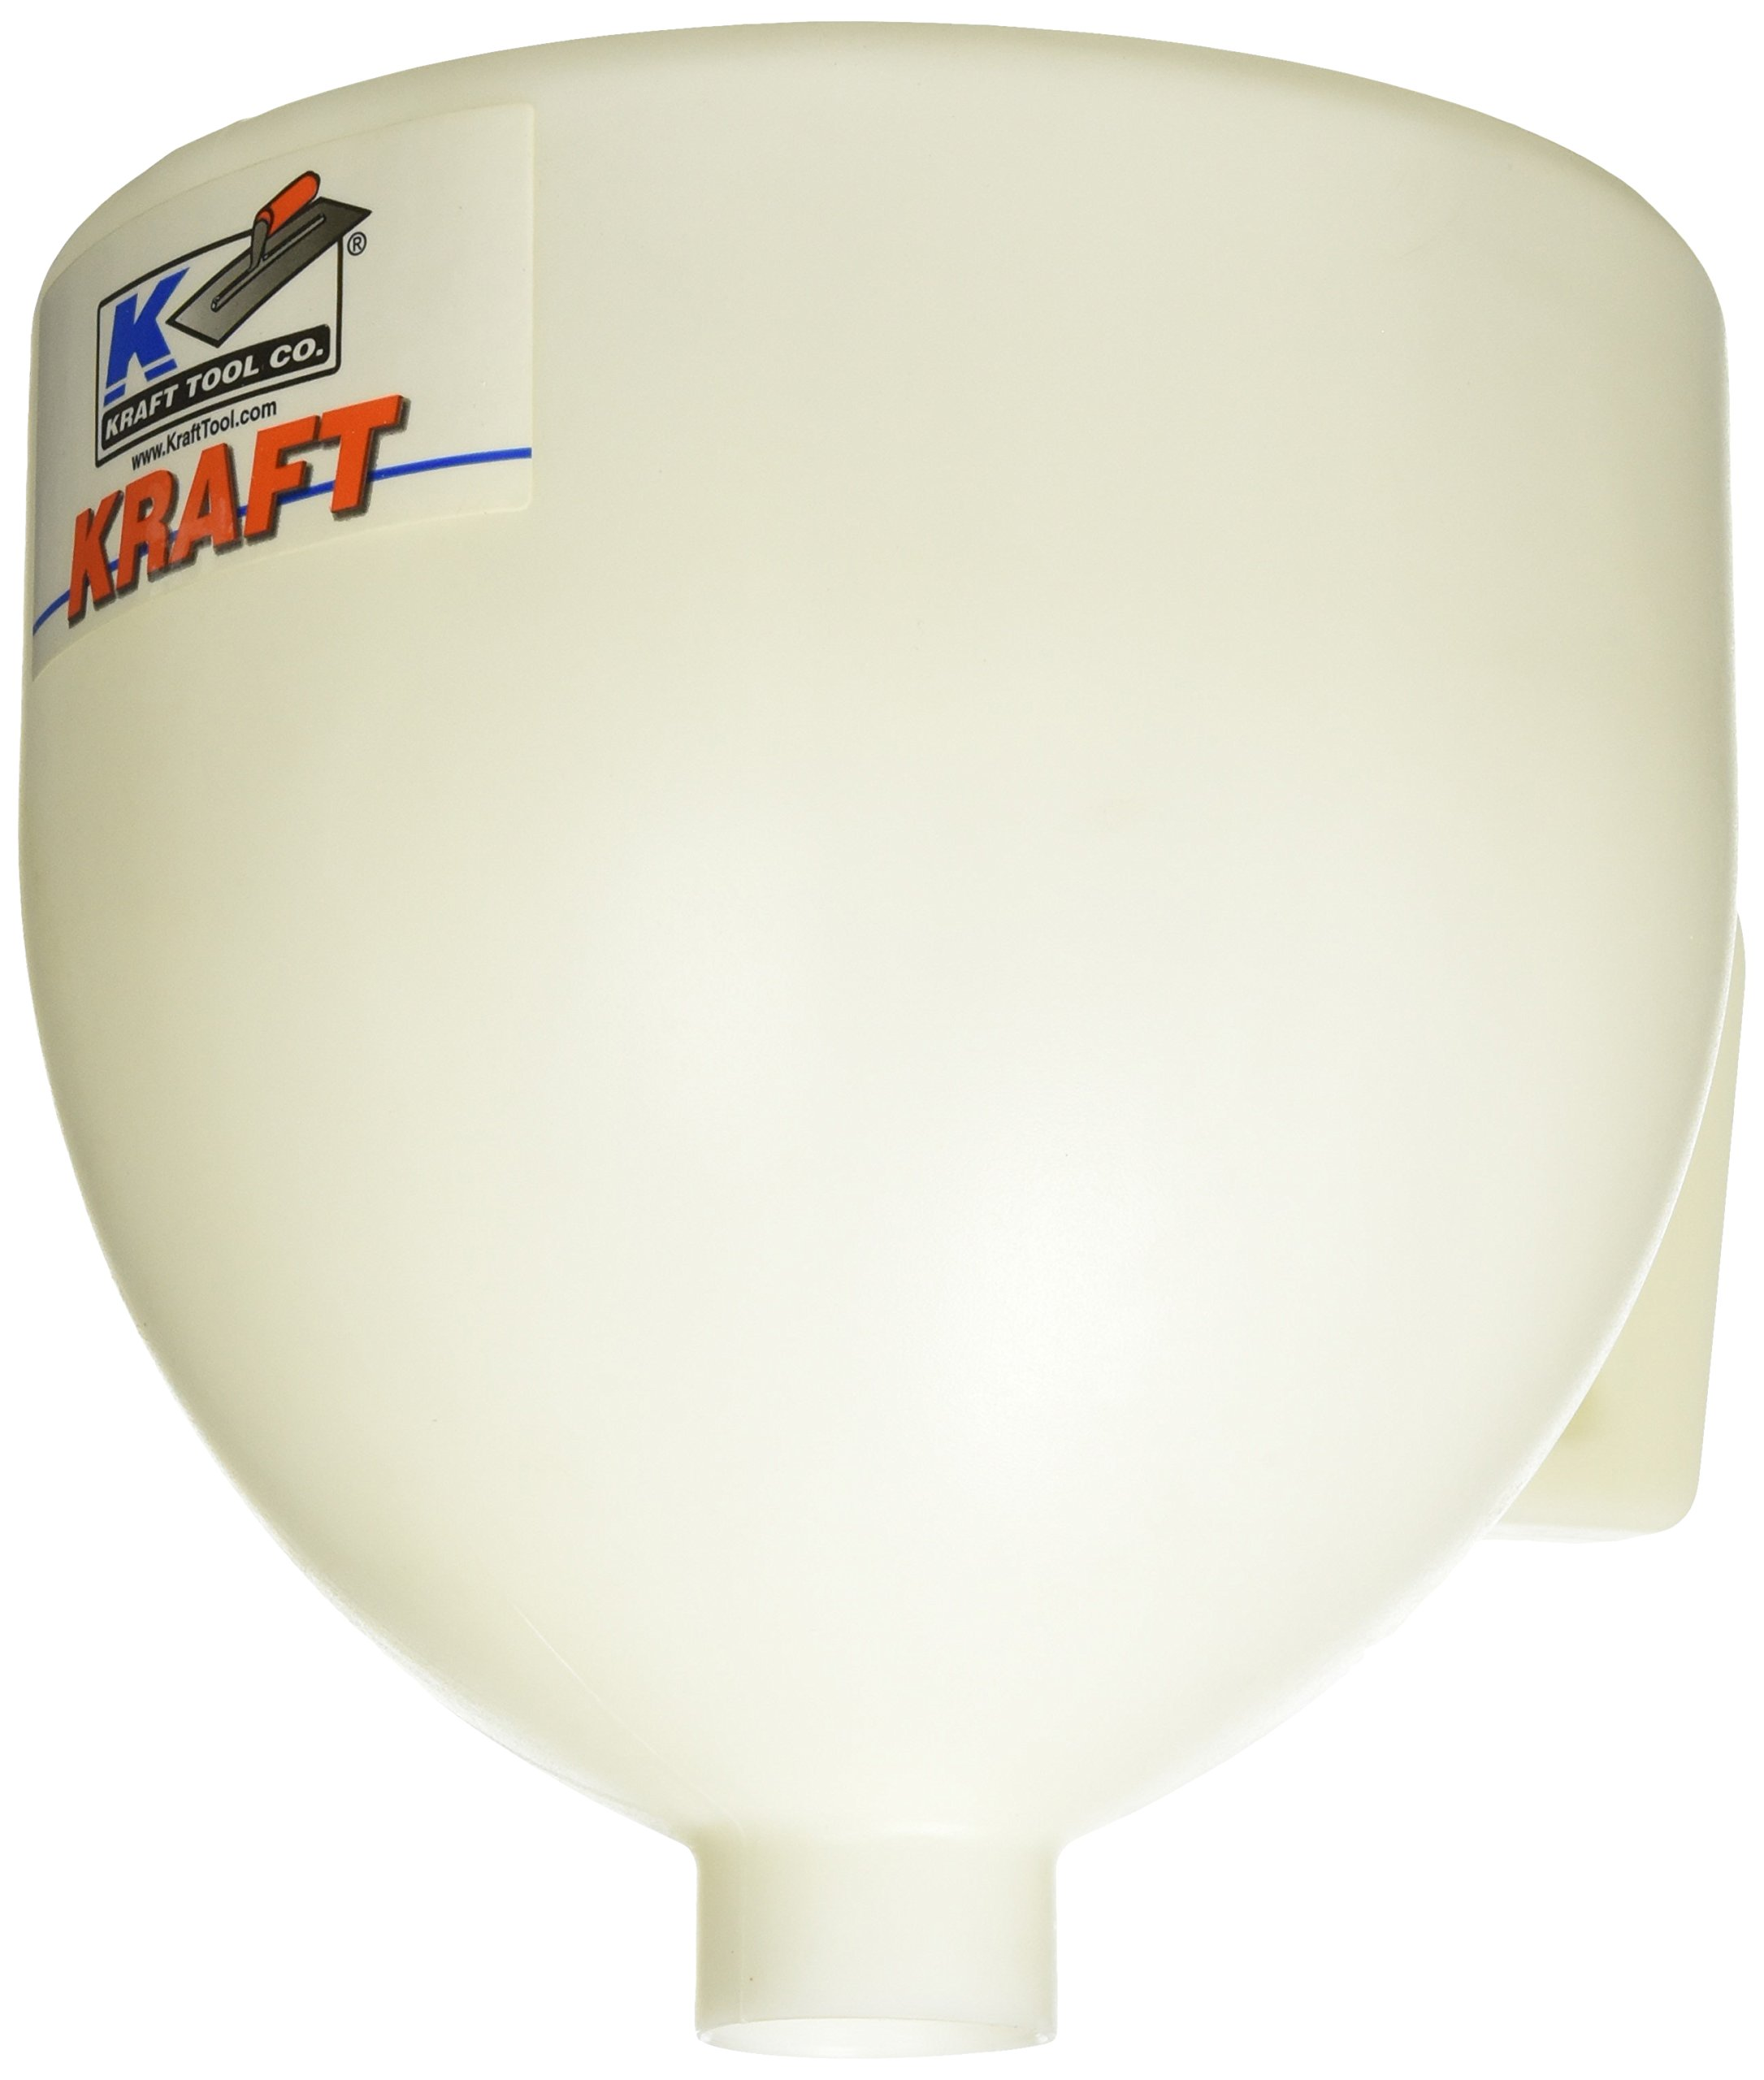 Kraft Tool PC801 Broadcast Gun and Hopper by Kraft Tool (Image #1)